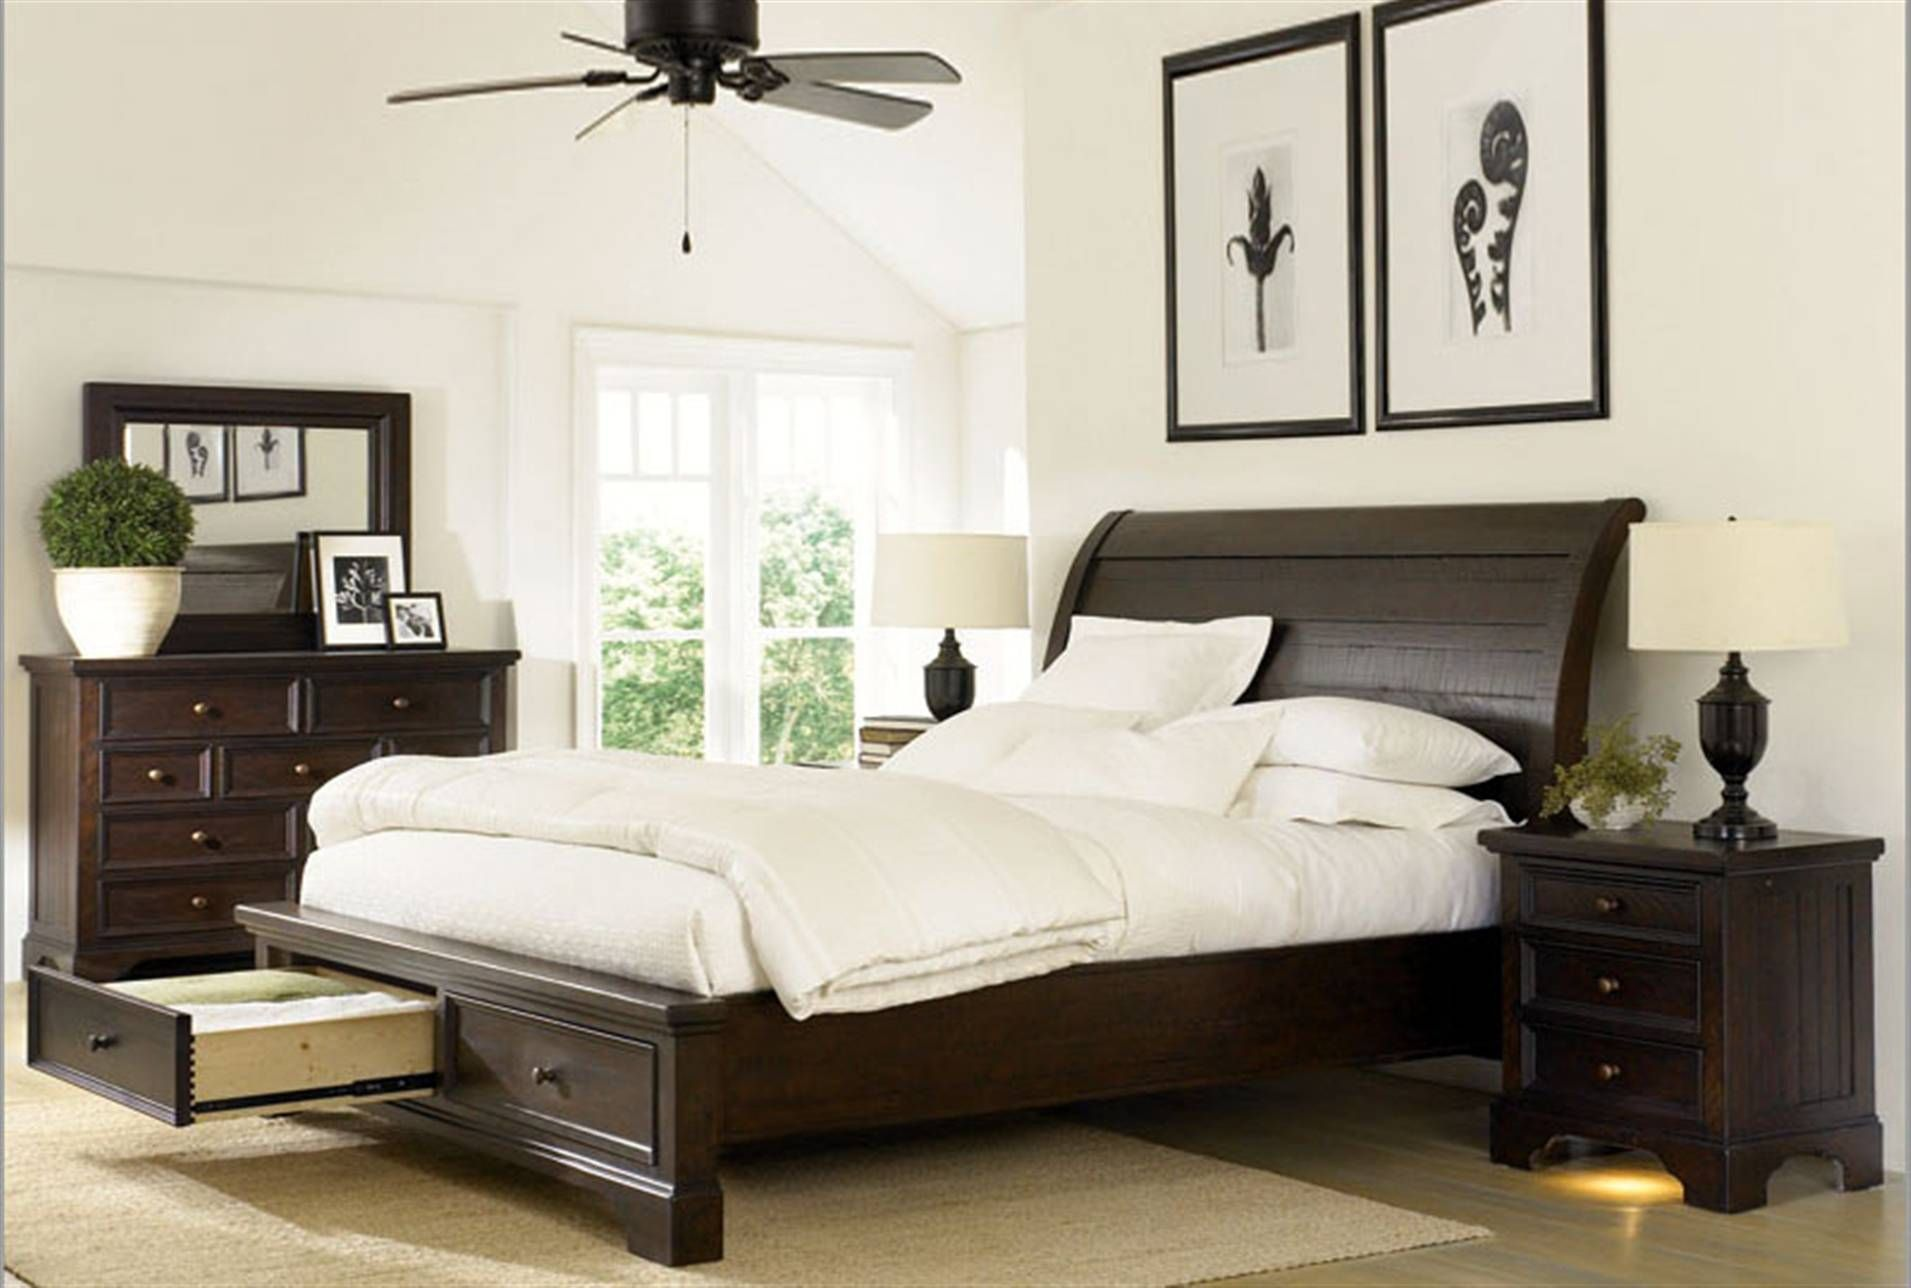 home bedroom with decor sets white classy interior set king on ideas cal